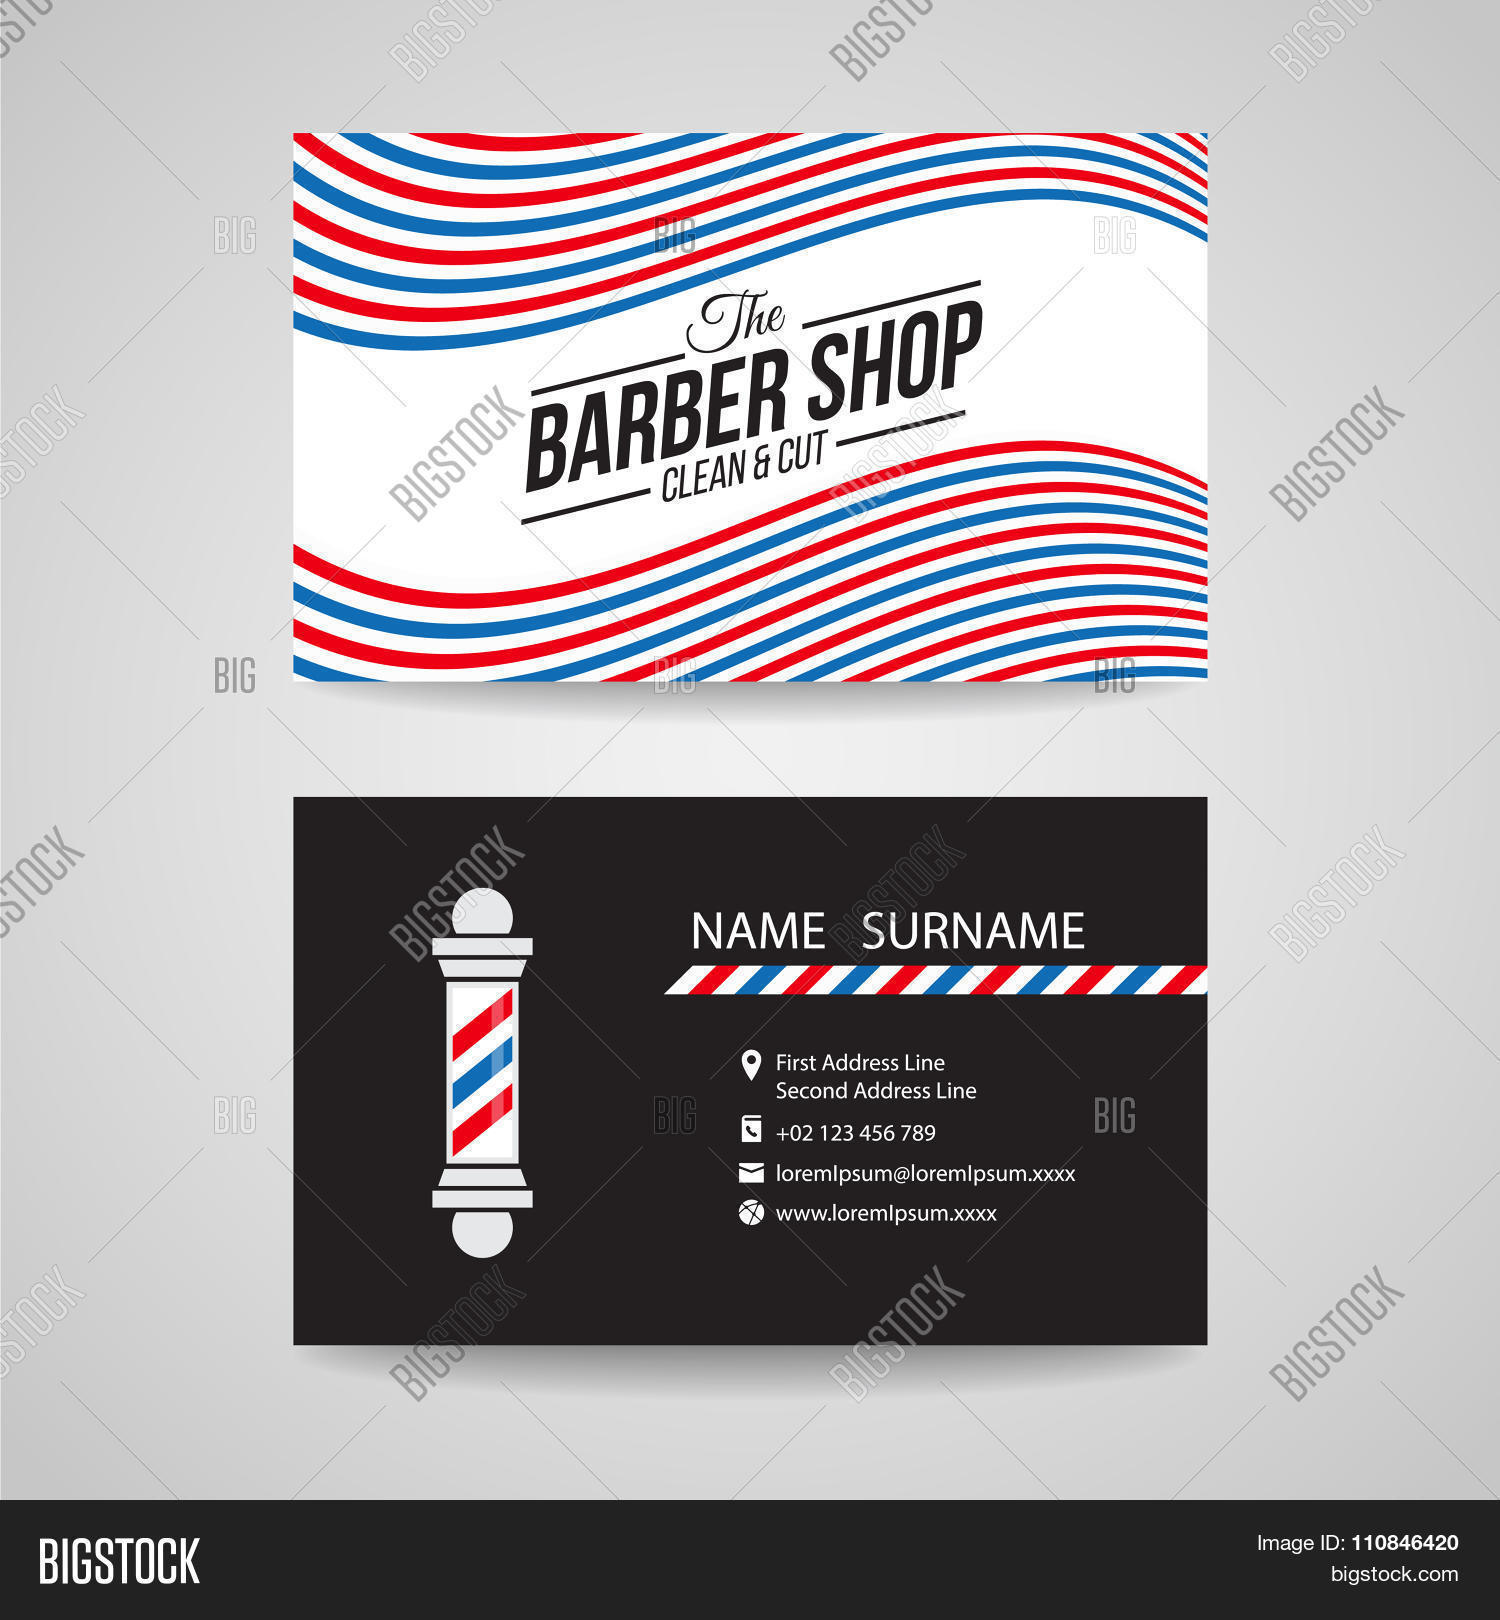 Business Card - Barber Shop Barber Vector & Photo | Bigstock